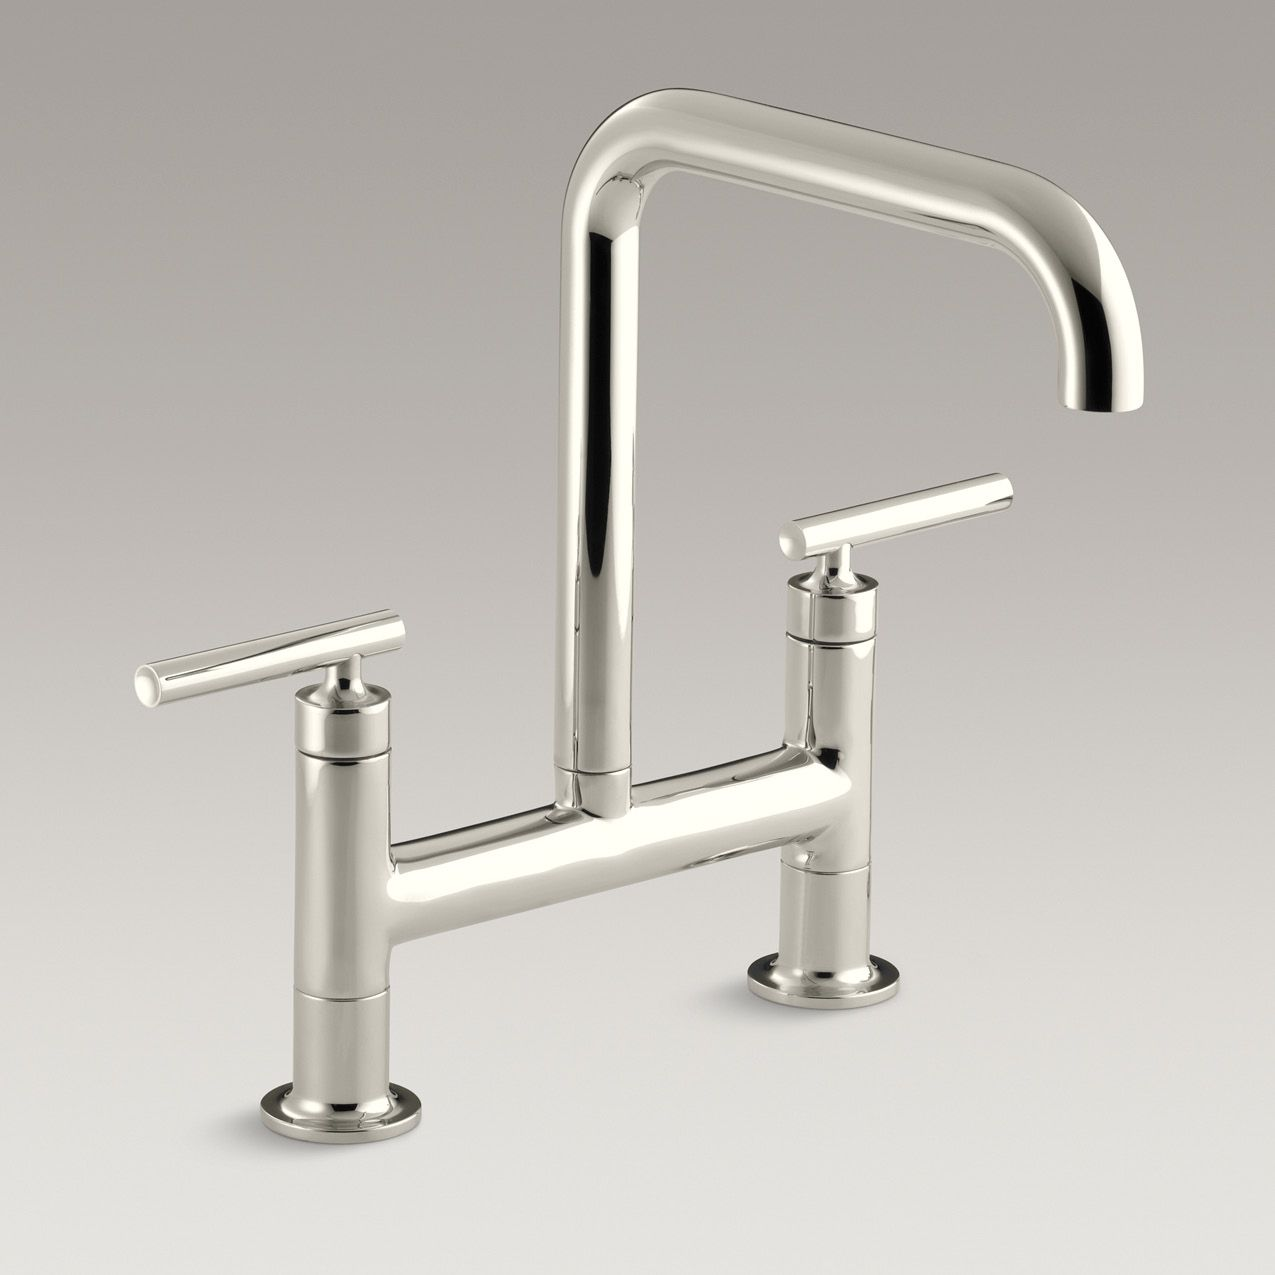 kohler purist kitchen faucet make cabinets the is an elegant addition to any